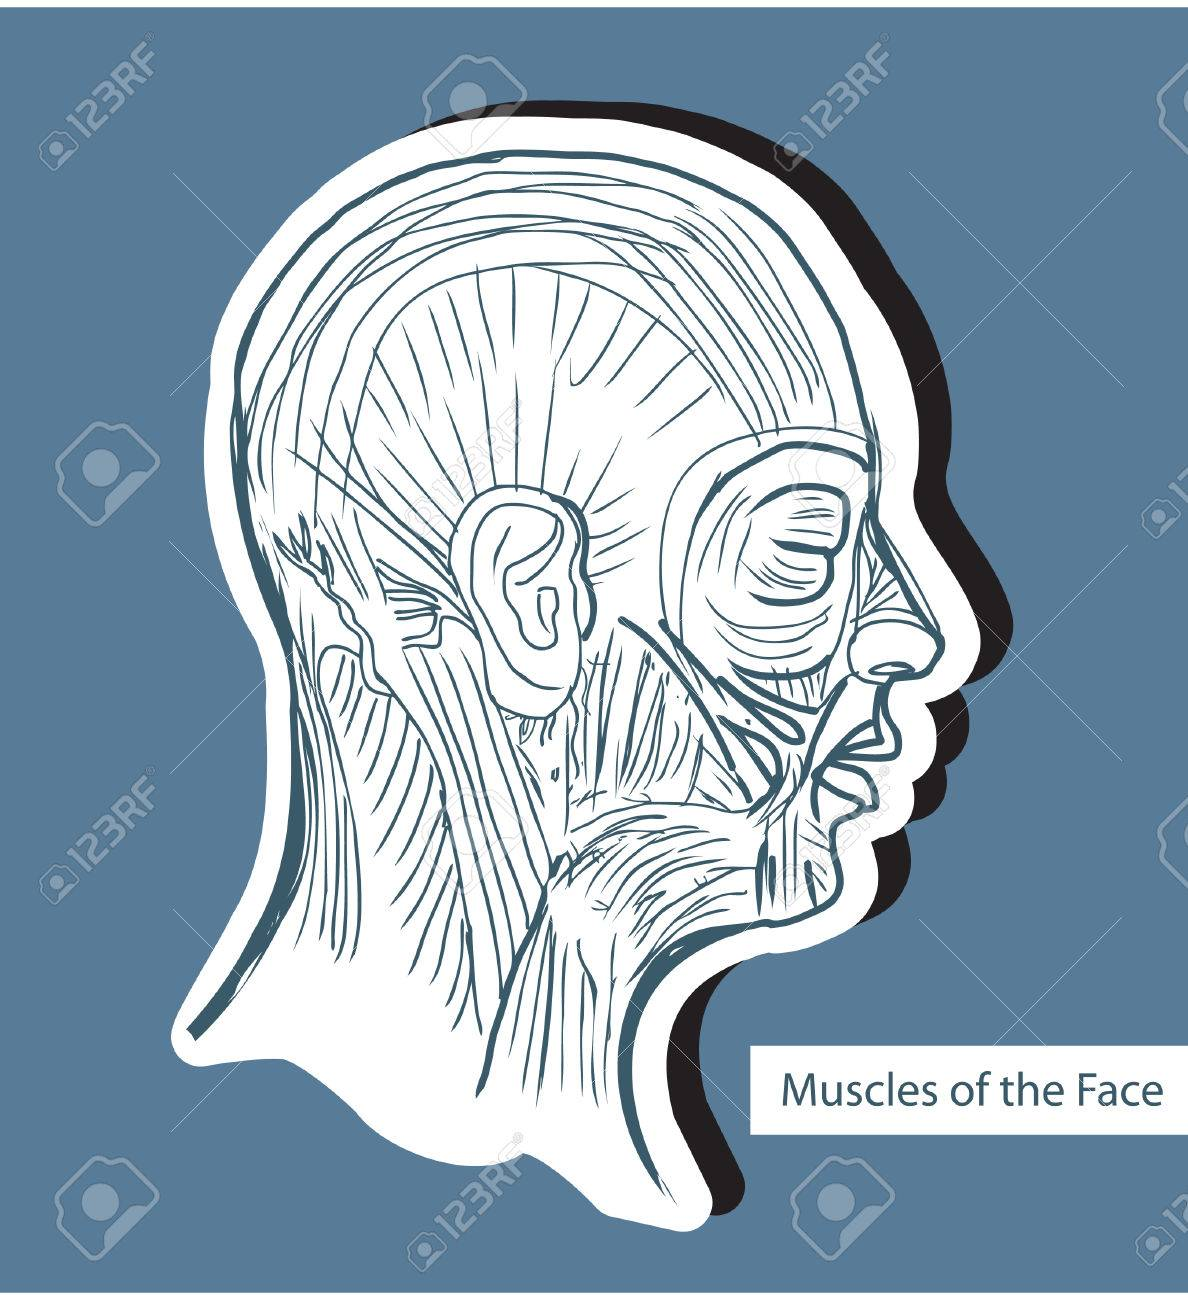 Human Anatomie Muscles Of The Face (Facial Muscles) - Medical ...